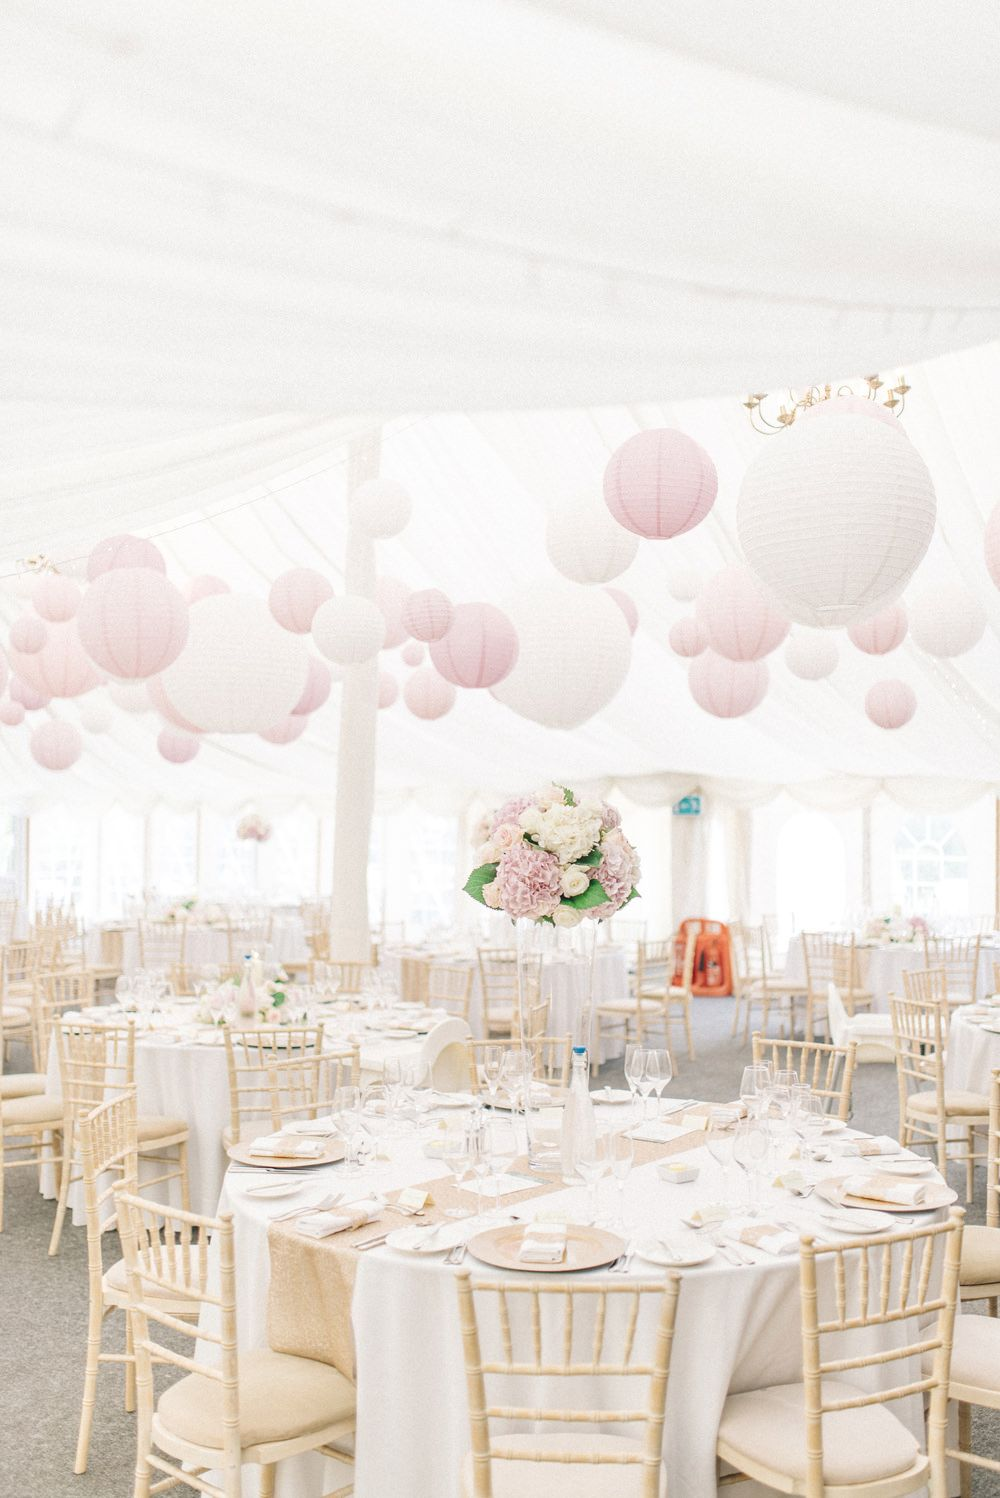 An outdoor wedding with Lyn Ashworth gown | Country weddings, Pastel ...